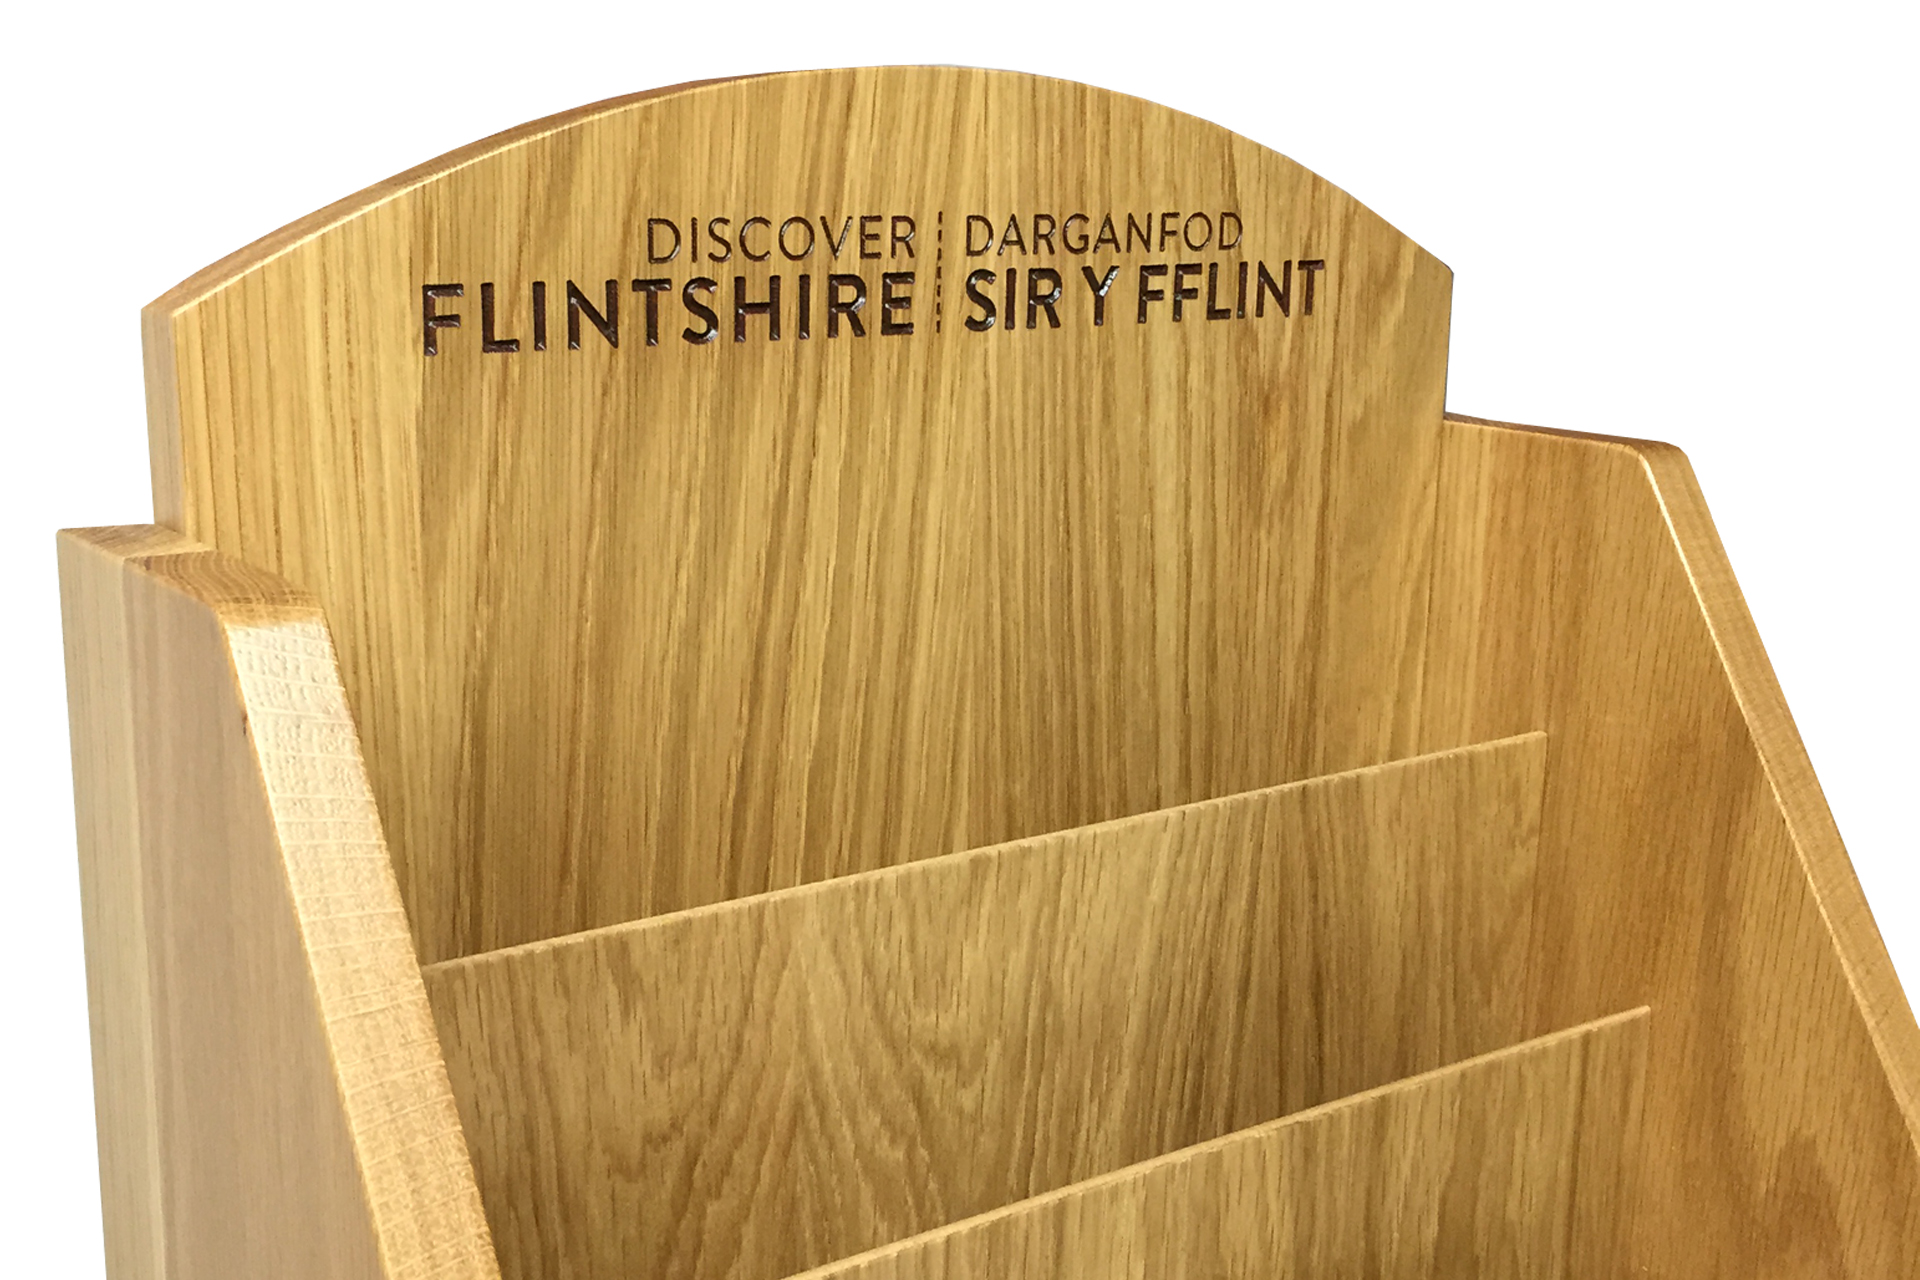 stand alone custom made wood leaflet holder for leisure industry